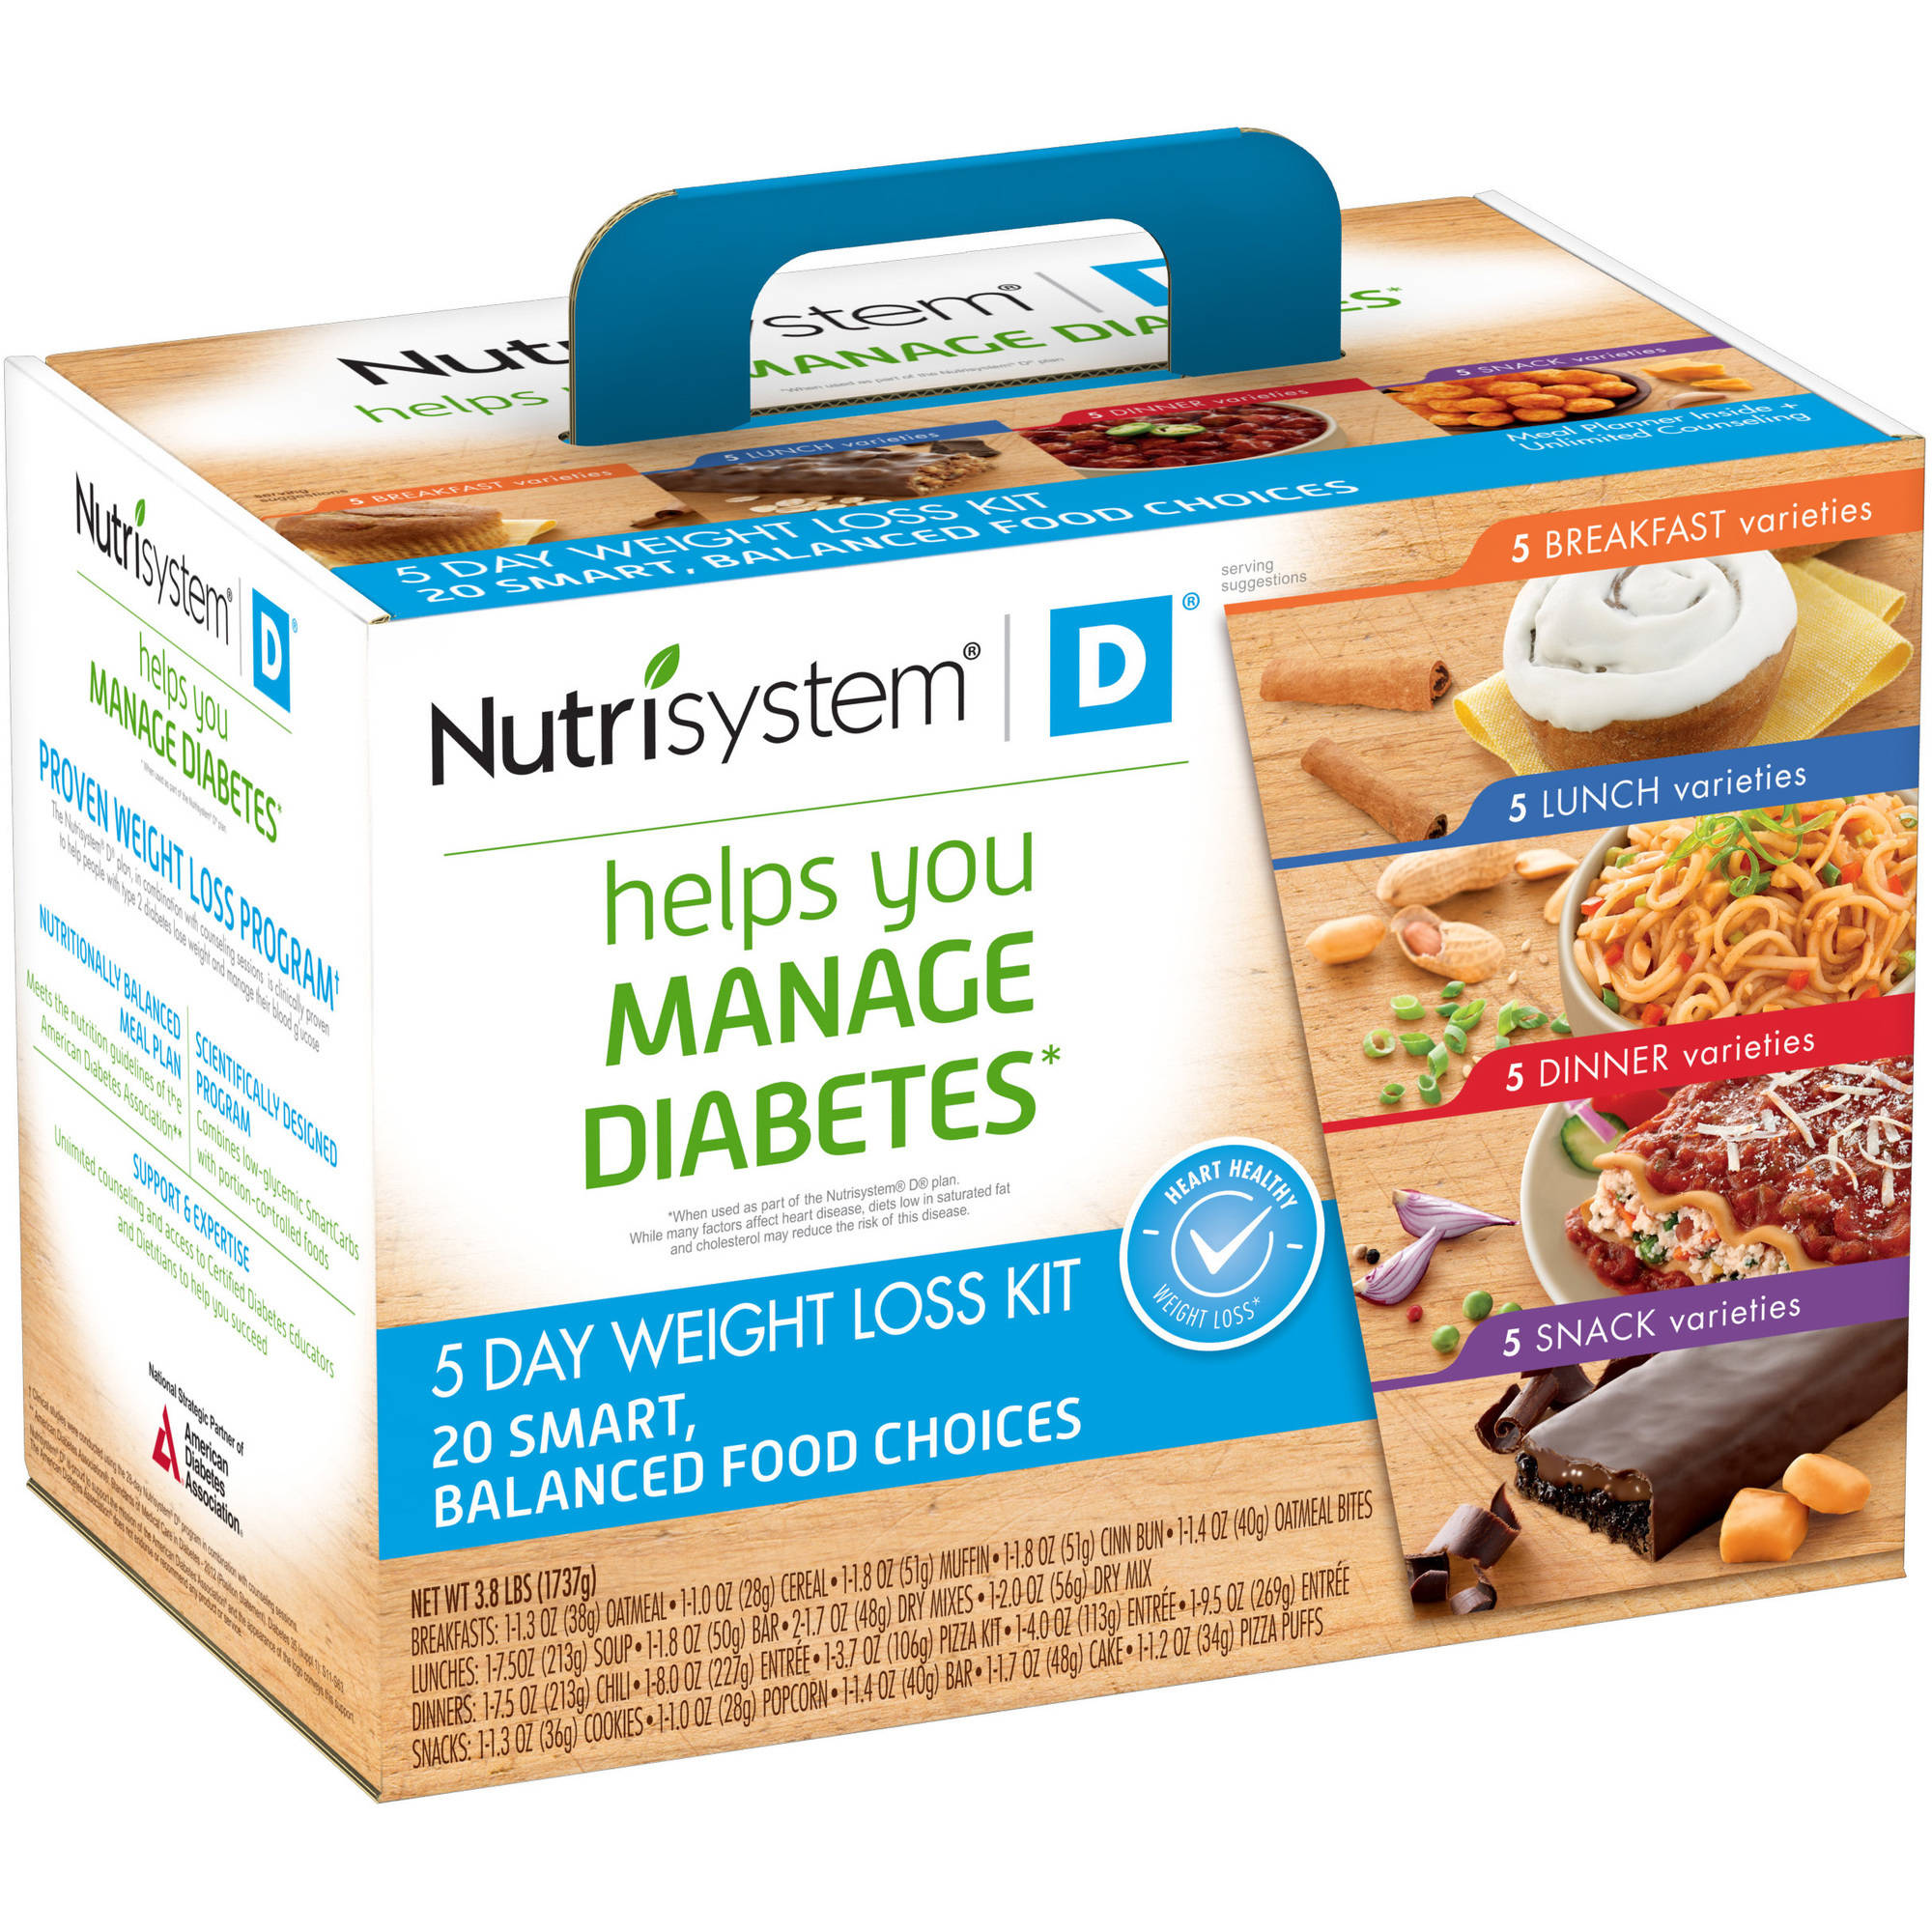 Nutrisystem for men is available in the market at affordable prices